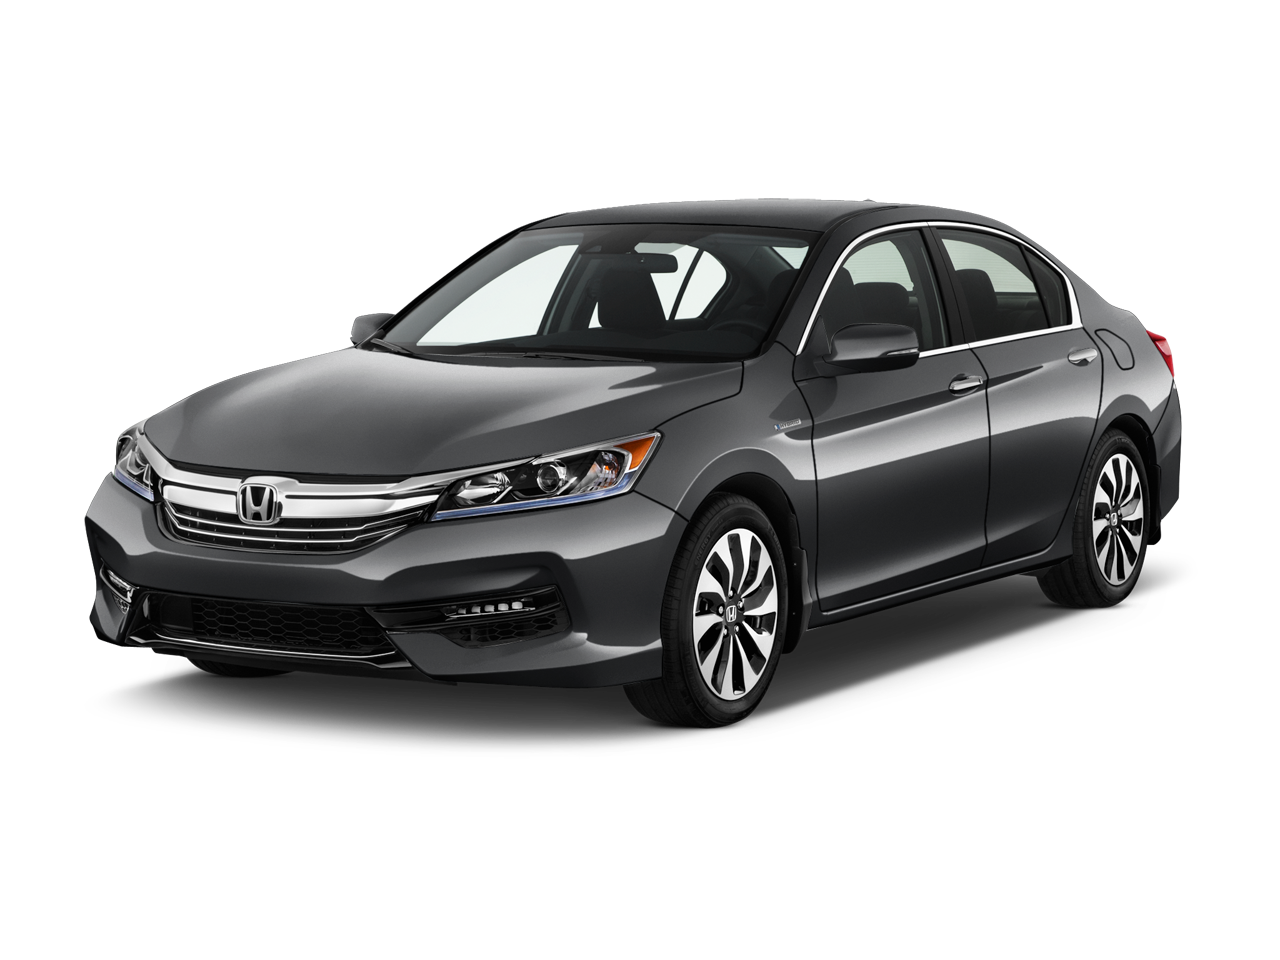 new 2017 honda accord hybrid near augusta ga gerald jones honda. Black Bedroom Furniture Sets. Home Design Ideas